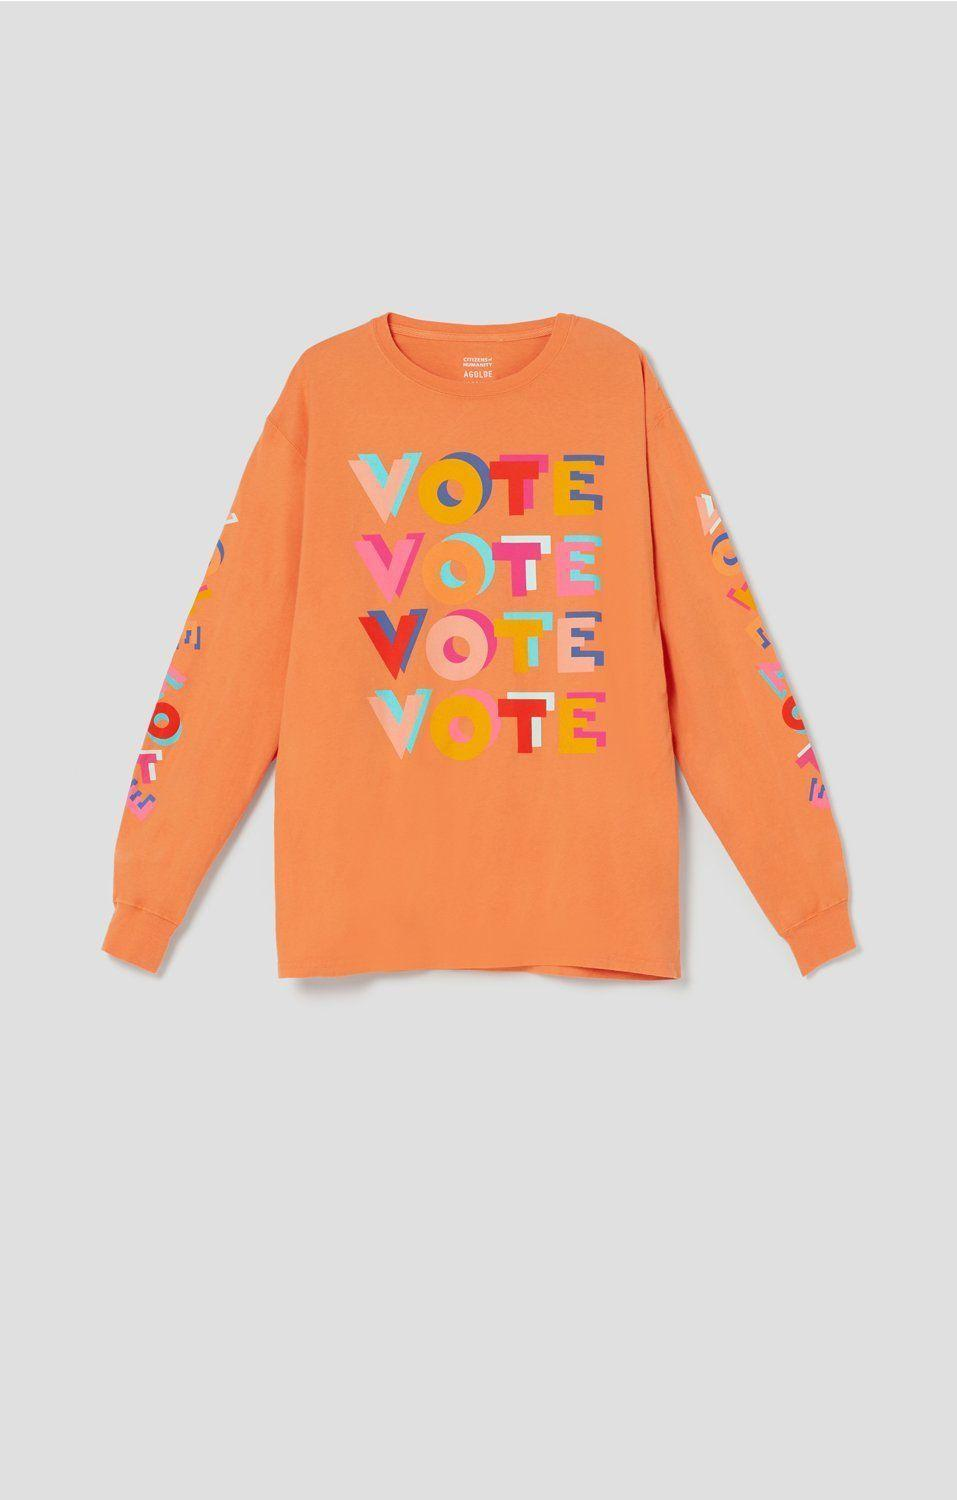 """<p>agolde.com</p><p><strong>$28.00</strong></p><p><a href=""""https://agolde.com/collections/aclu-vote/products/aclu-socal-haas-brothers-long-sleeve-tee-orange-you-glad-you-didnt-vote-him"""" rel=""""nofollow noopener"""" target=""""_blank"""" data-ylk=""""slk:Shop Now"""" class=""""link rapid-noclick-resp"""">Shop Now</a></p>"""